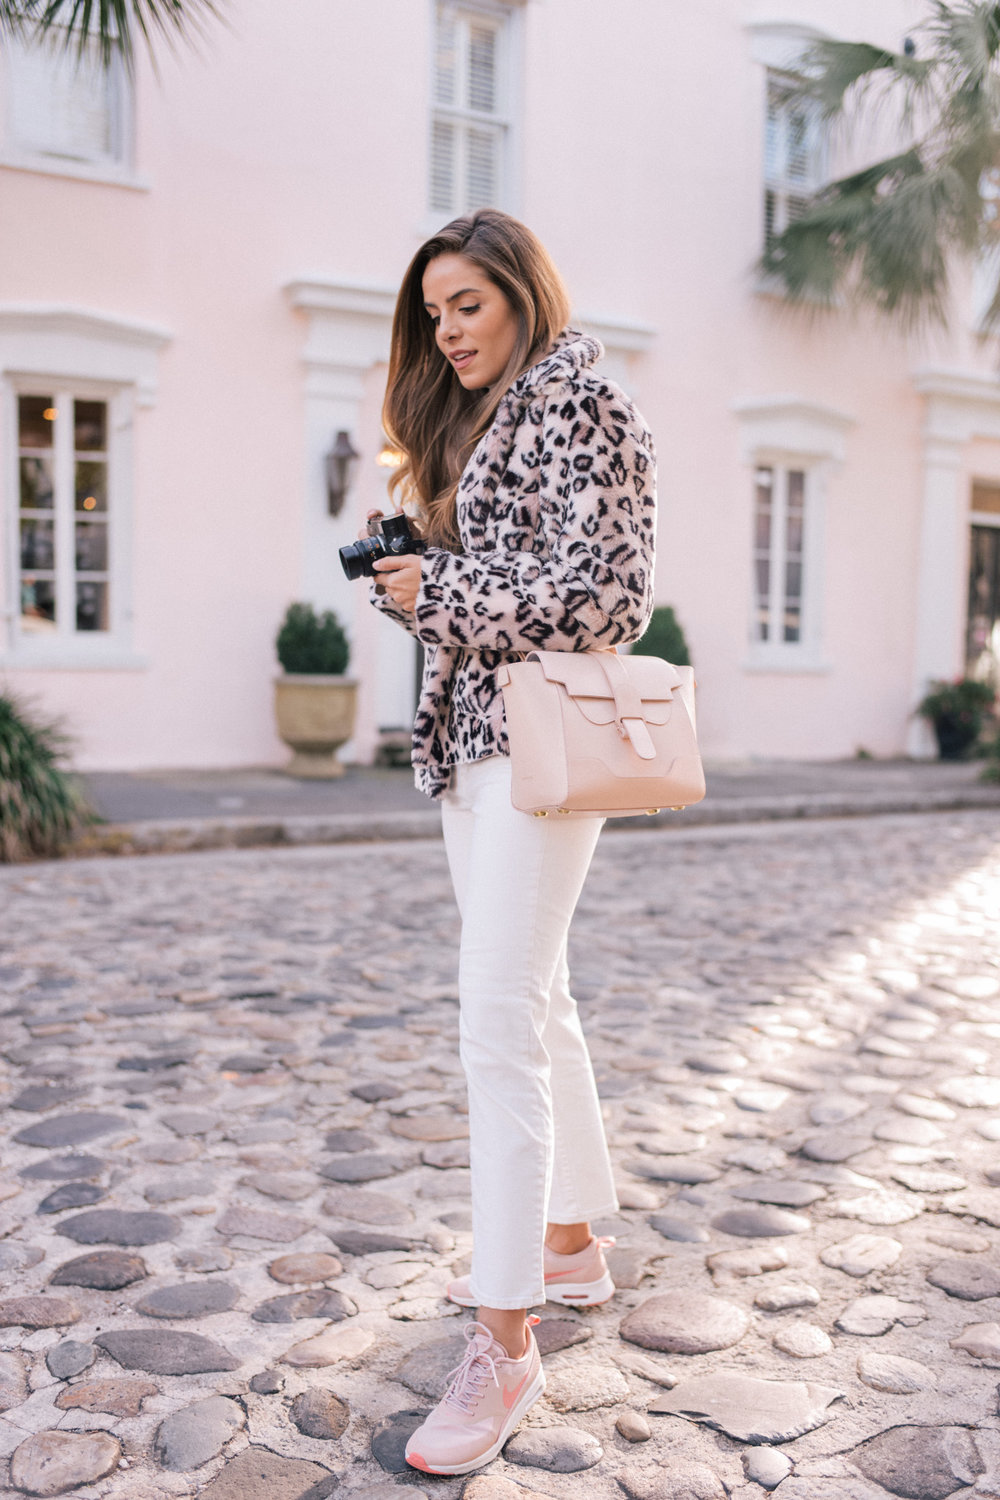 Another leopard coat that takes this causal outfit to the next level!